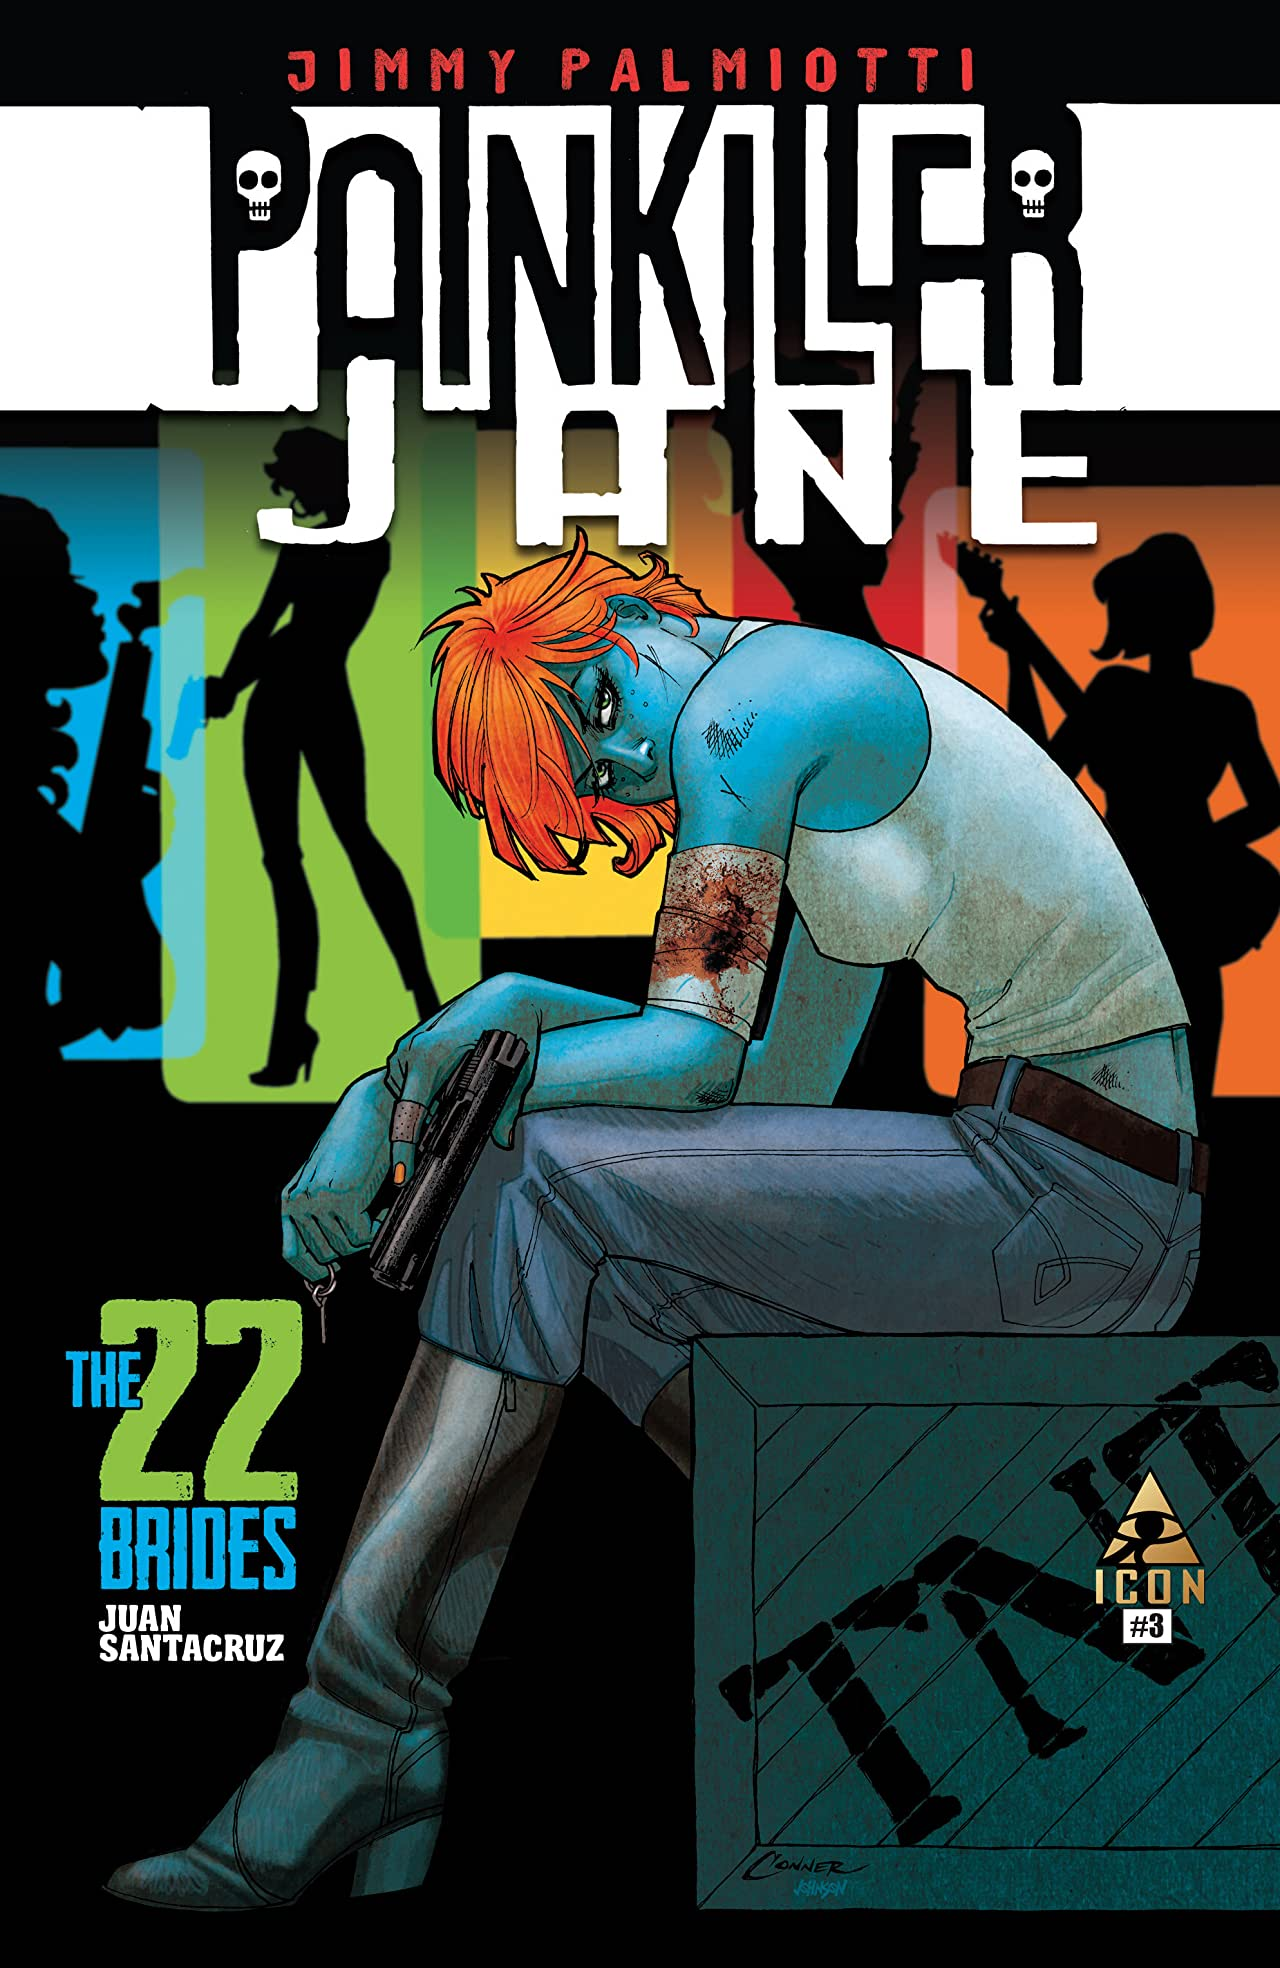 Painkiller Jane: The 22 Brides #3 (of 3)